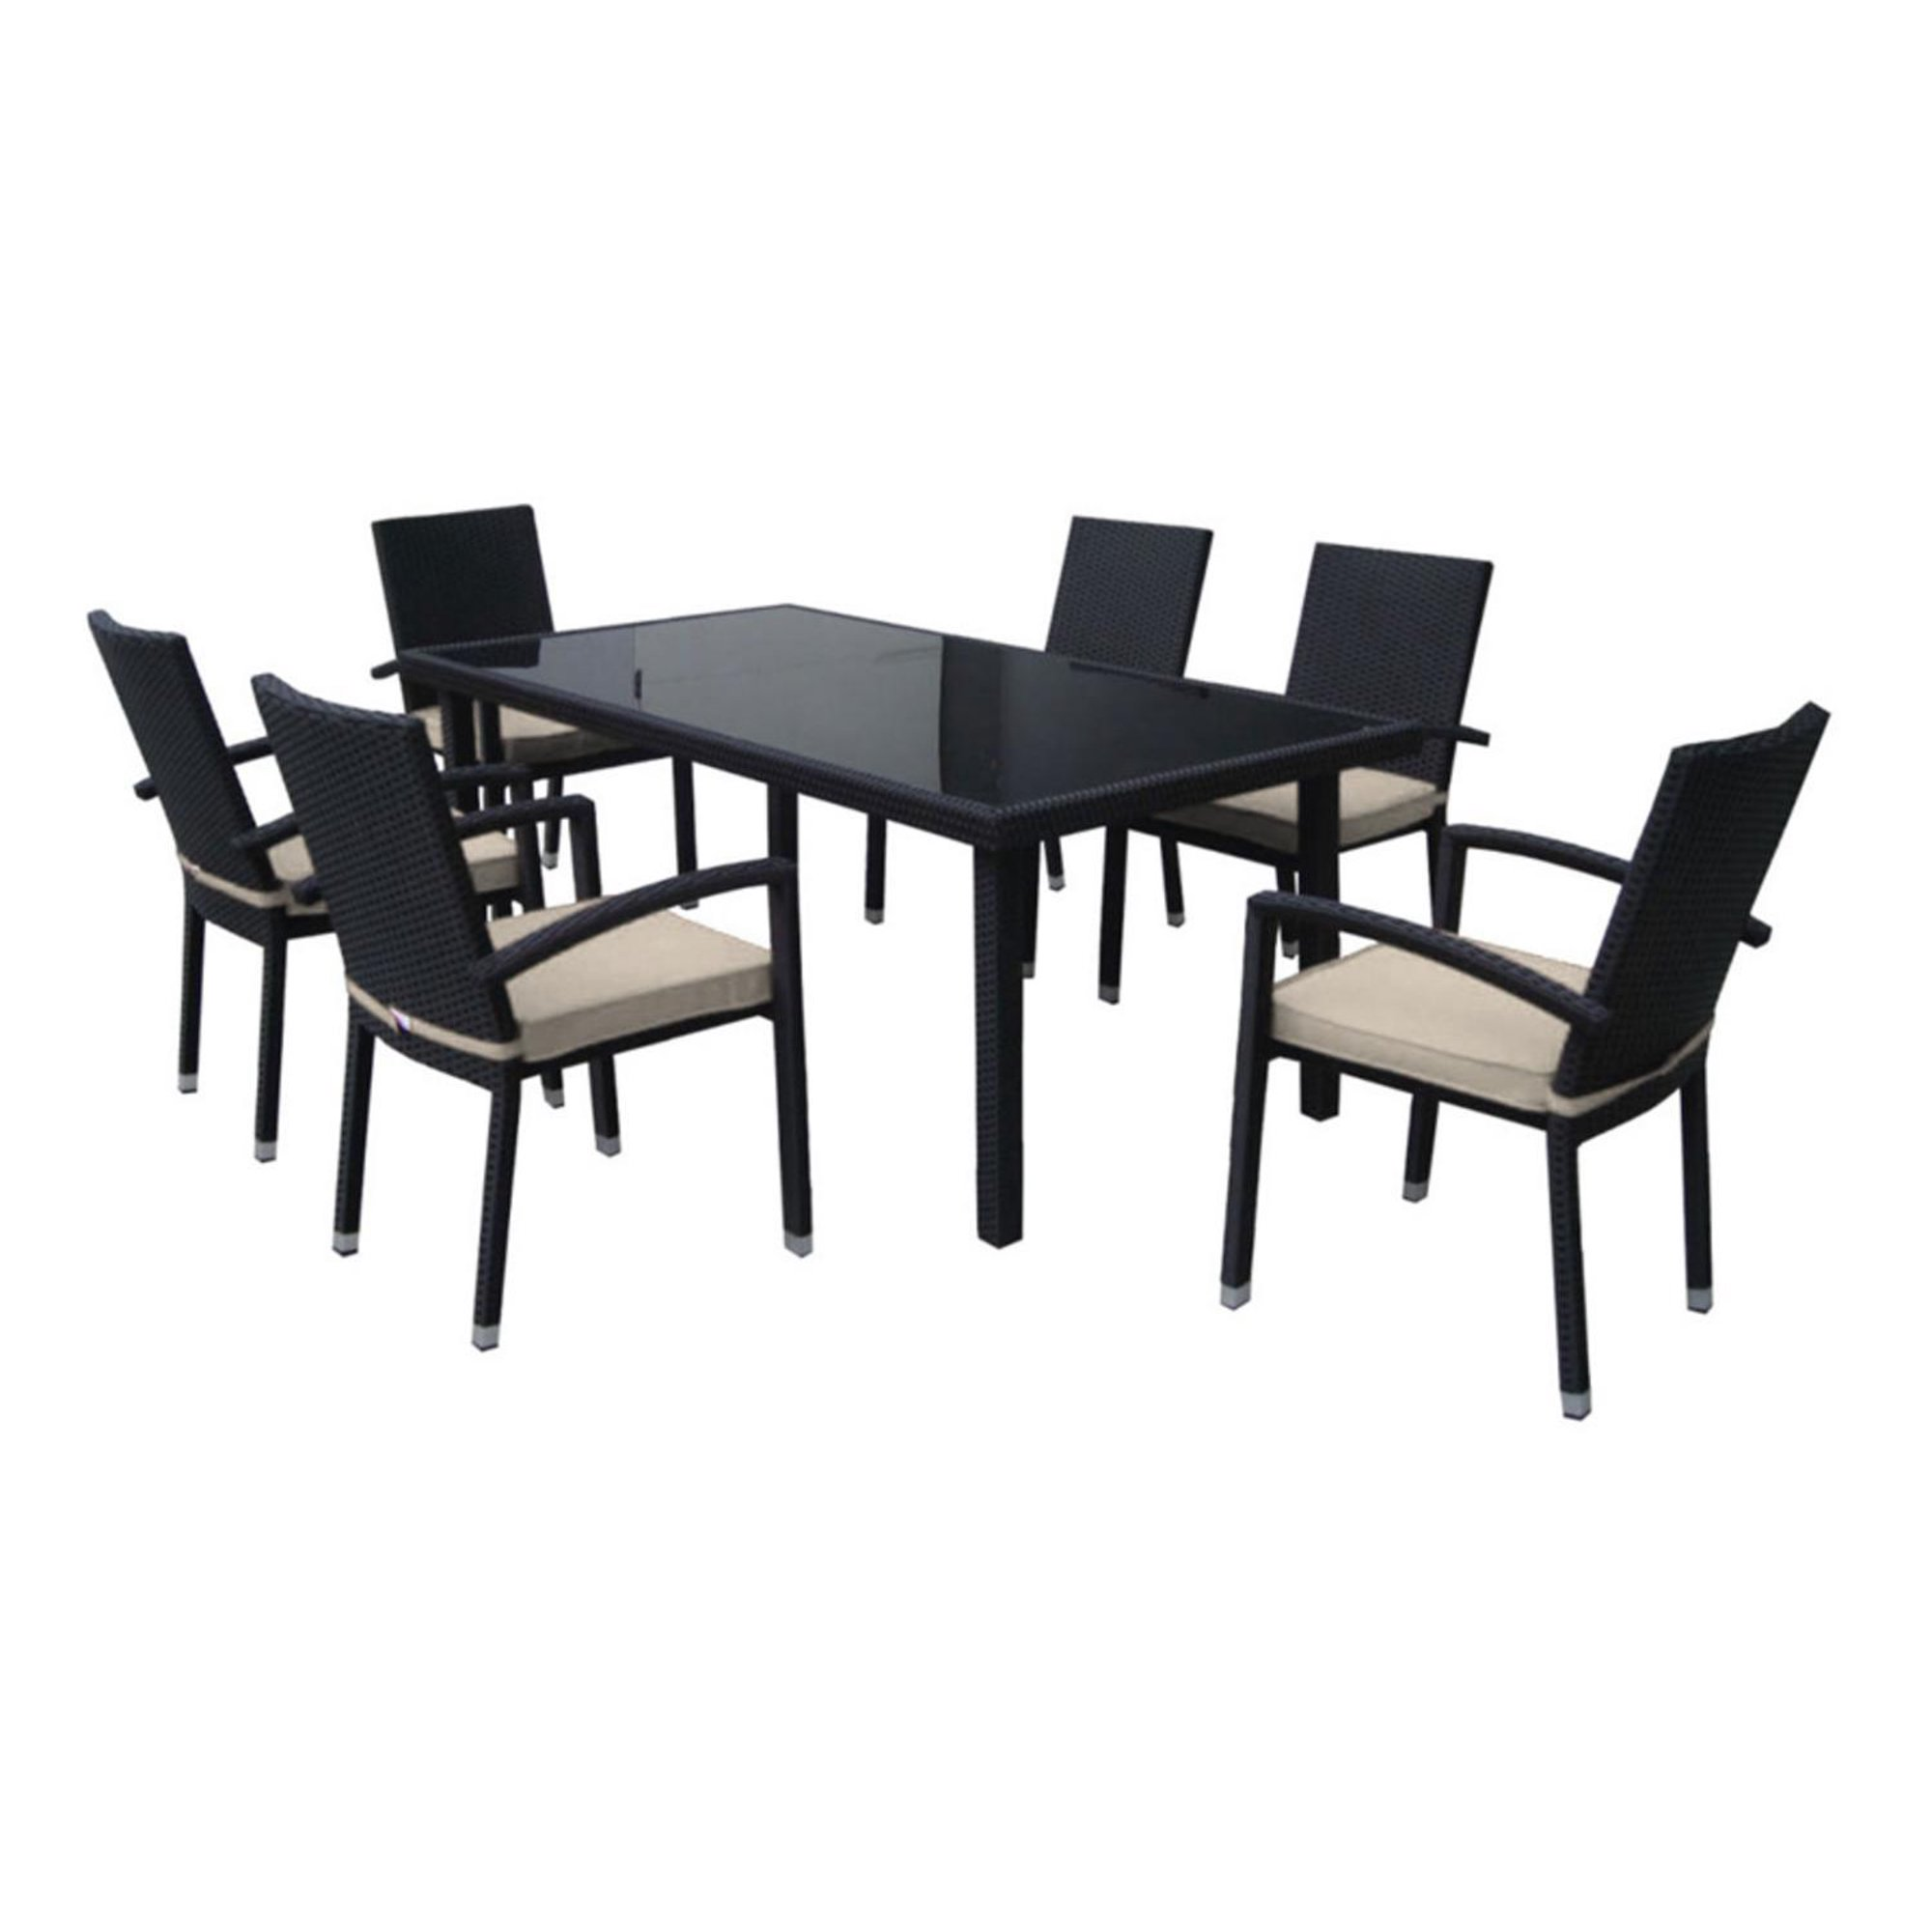 Stupendous 7 Piece Black Resin Wicker Outdoor Furniture Patio Dining Onthecornerstone Fun Painted Chair Ideas Images Onthecornerstoneorg